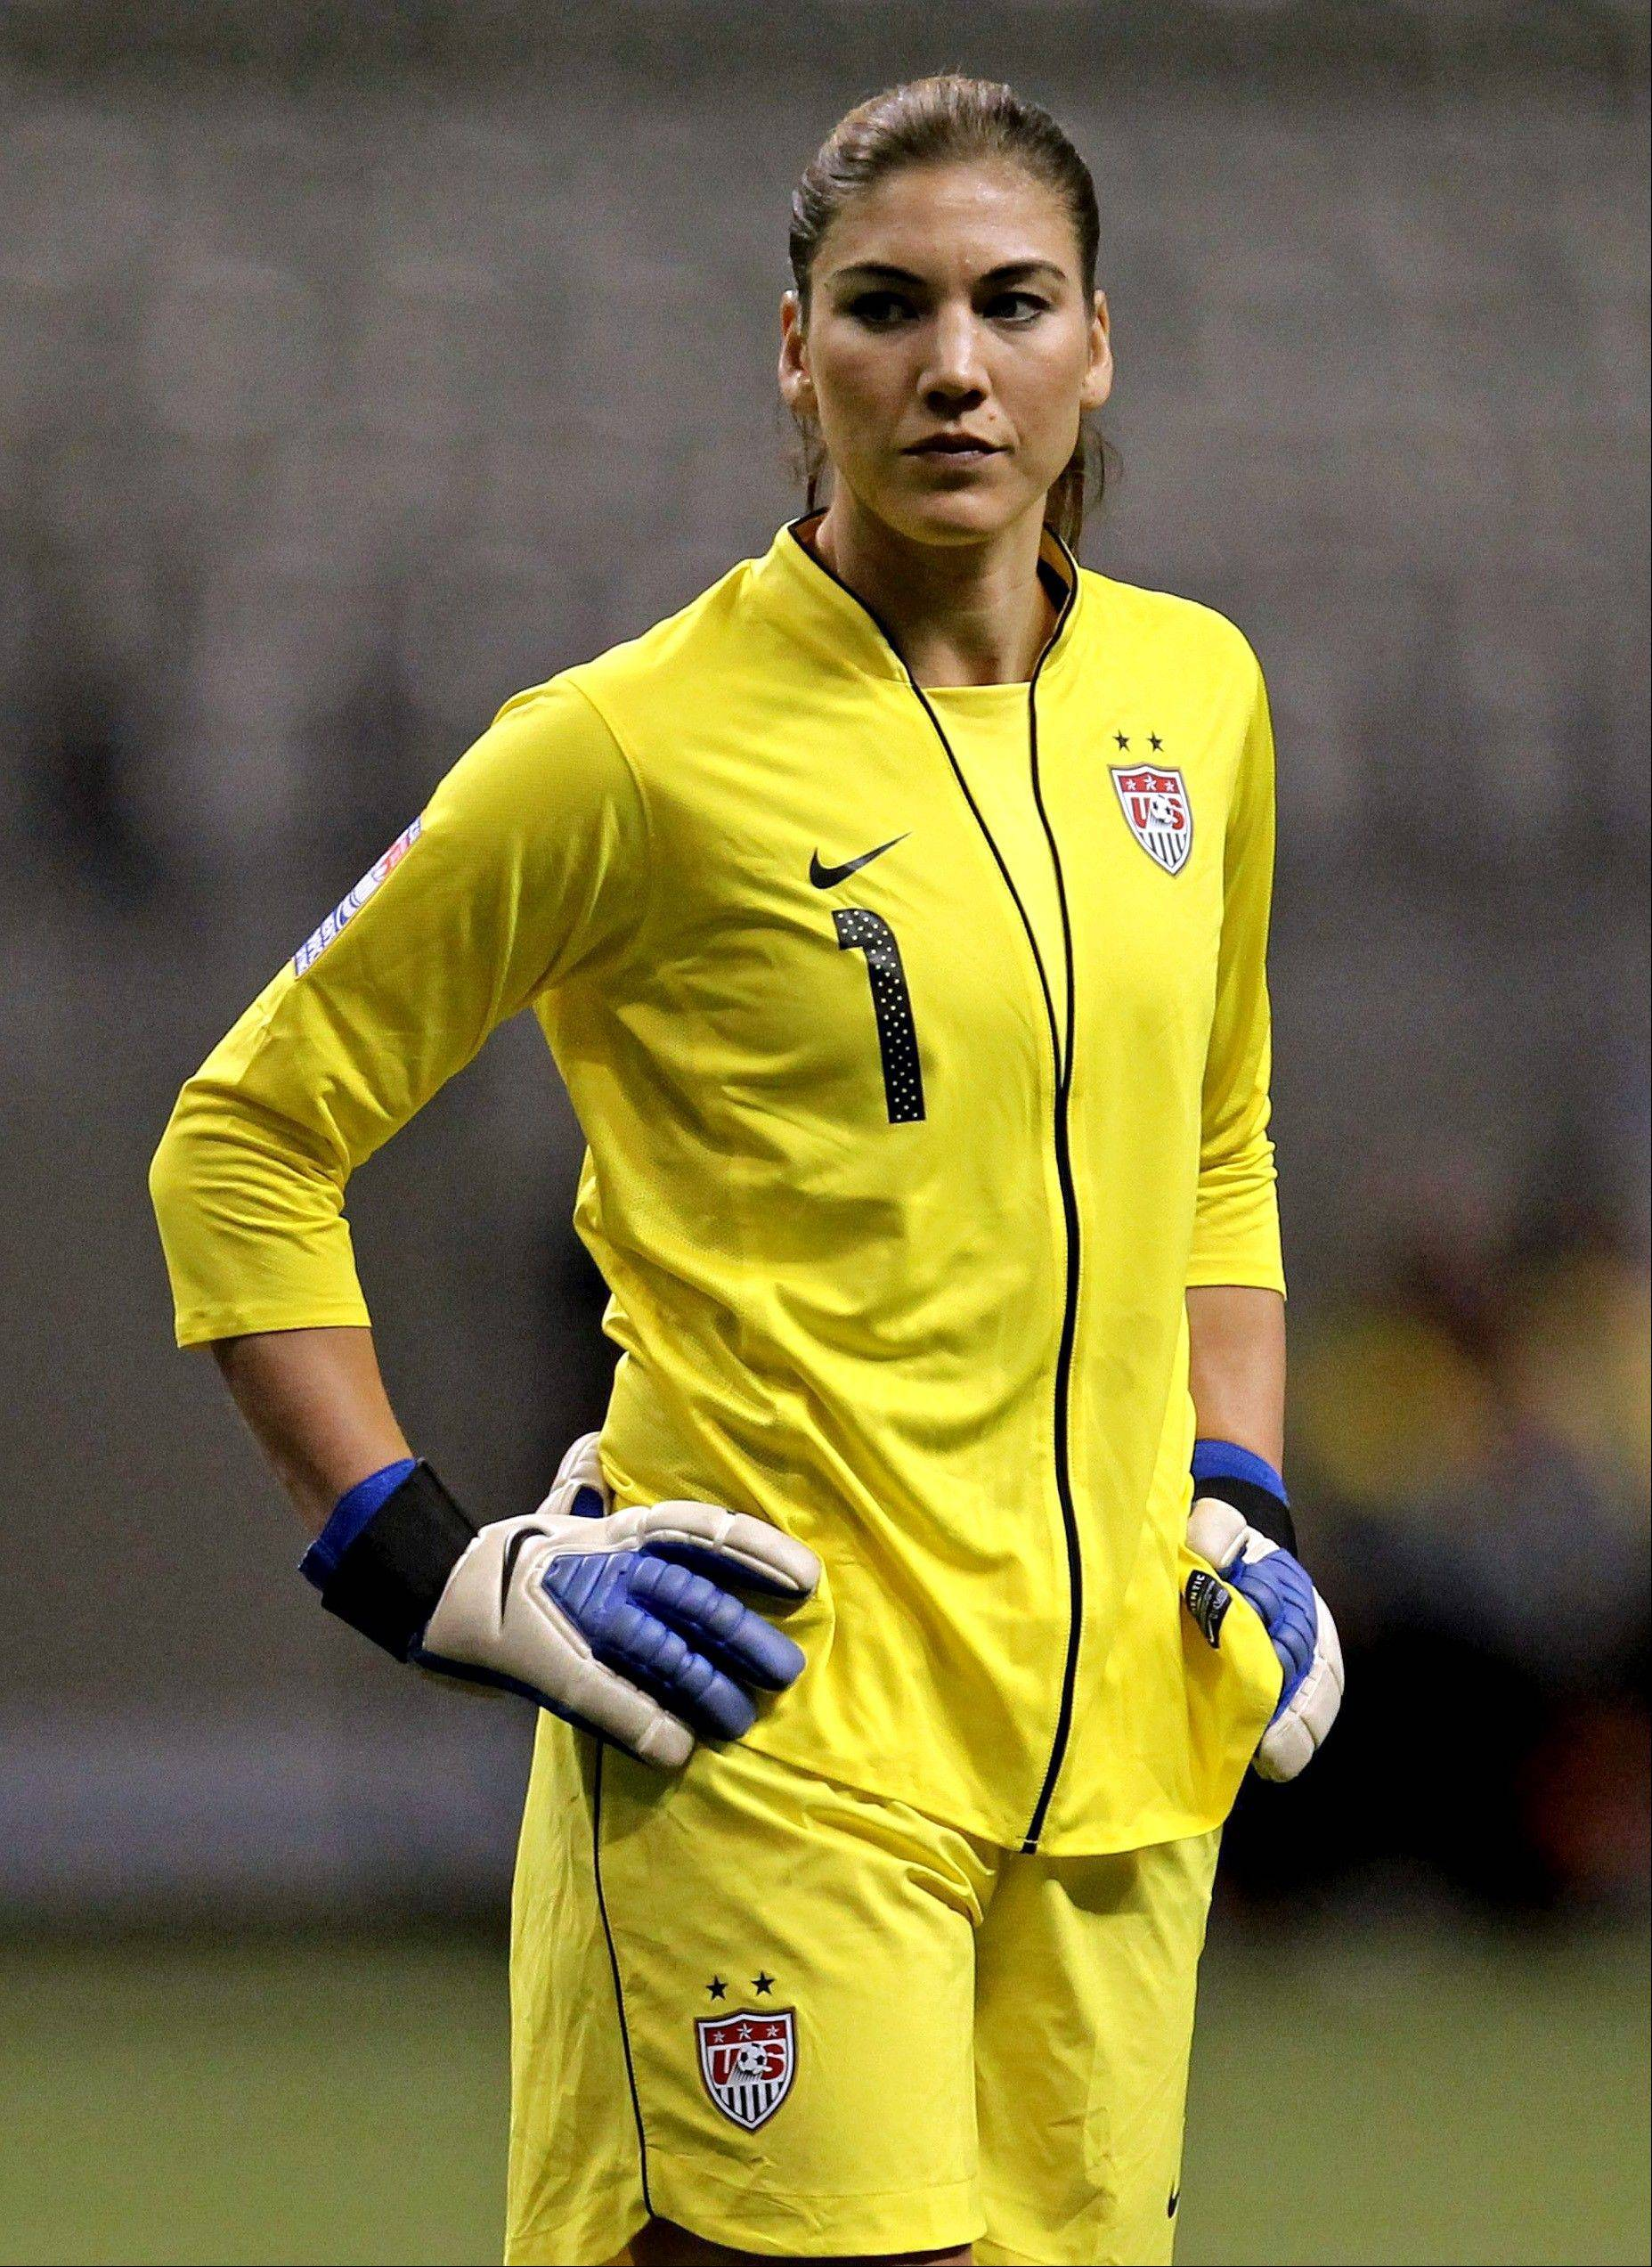 Hope Solo will be minding the net on Sept. 3 when the U.S. national team plays Mexico.